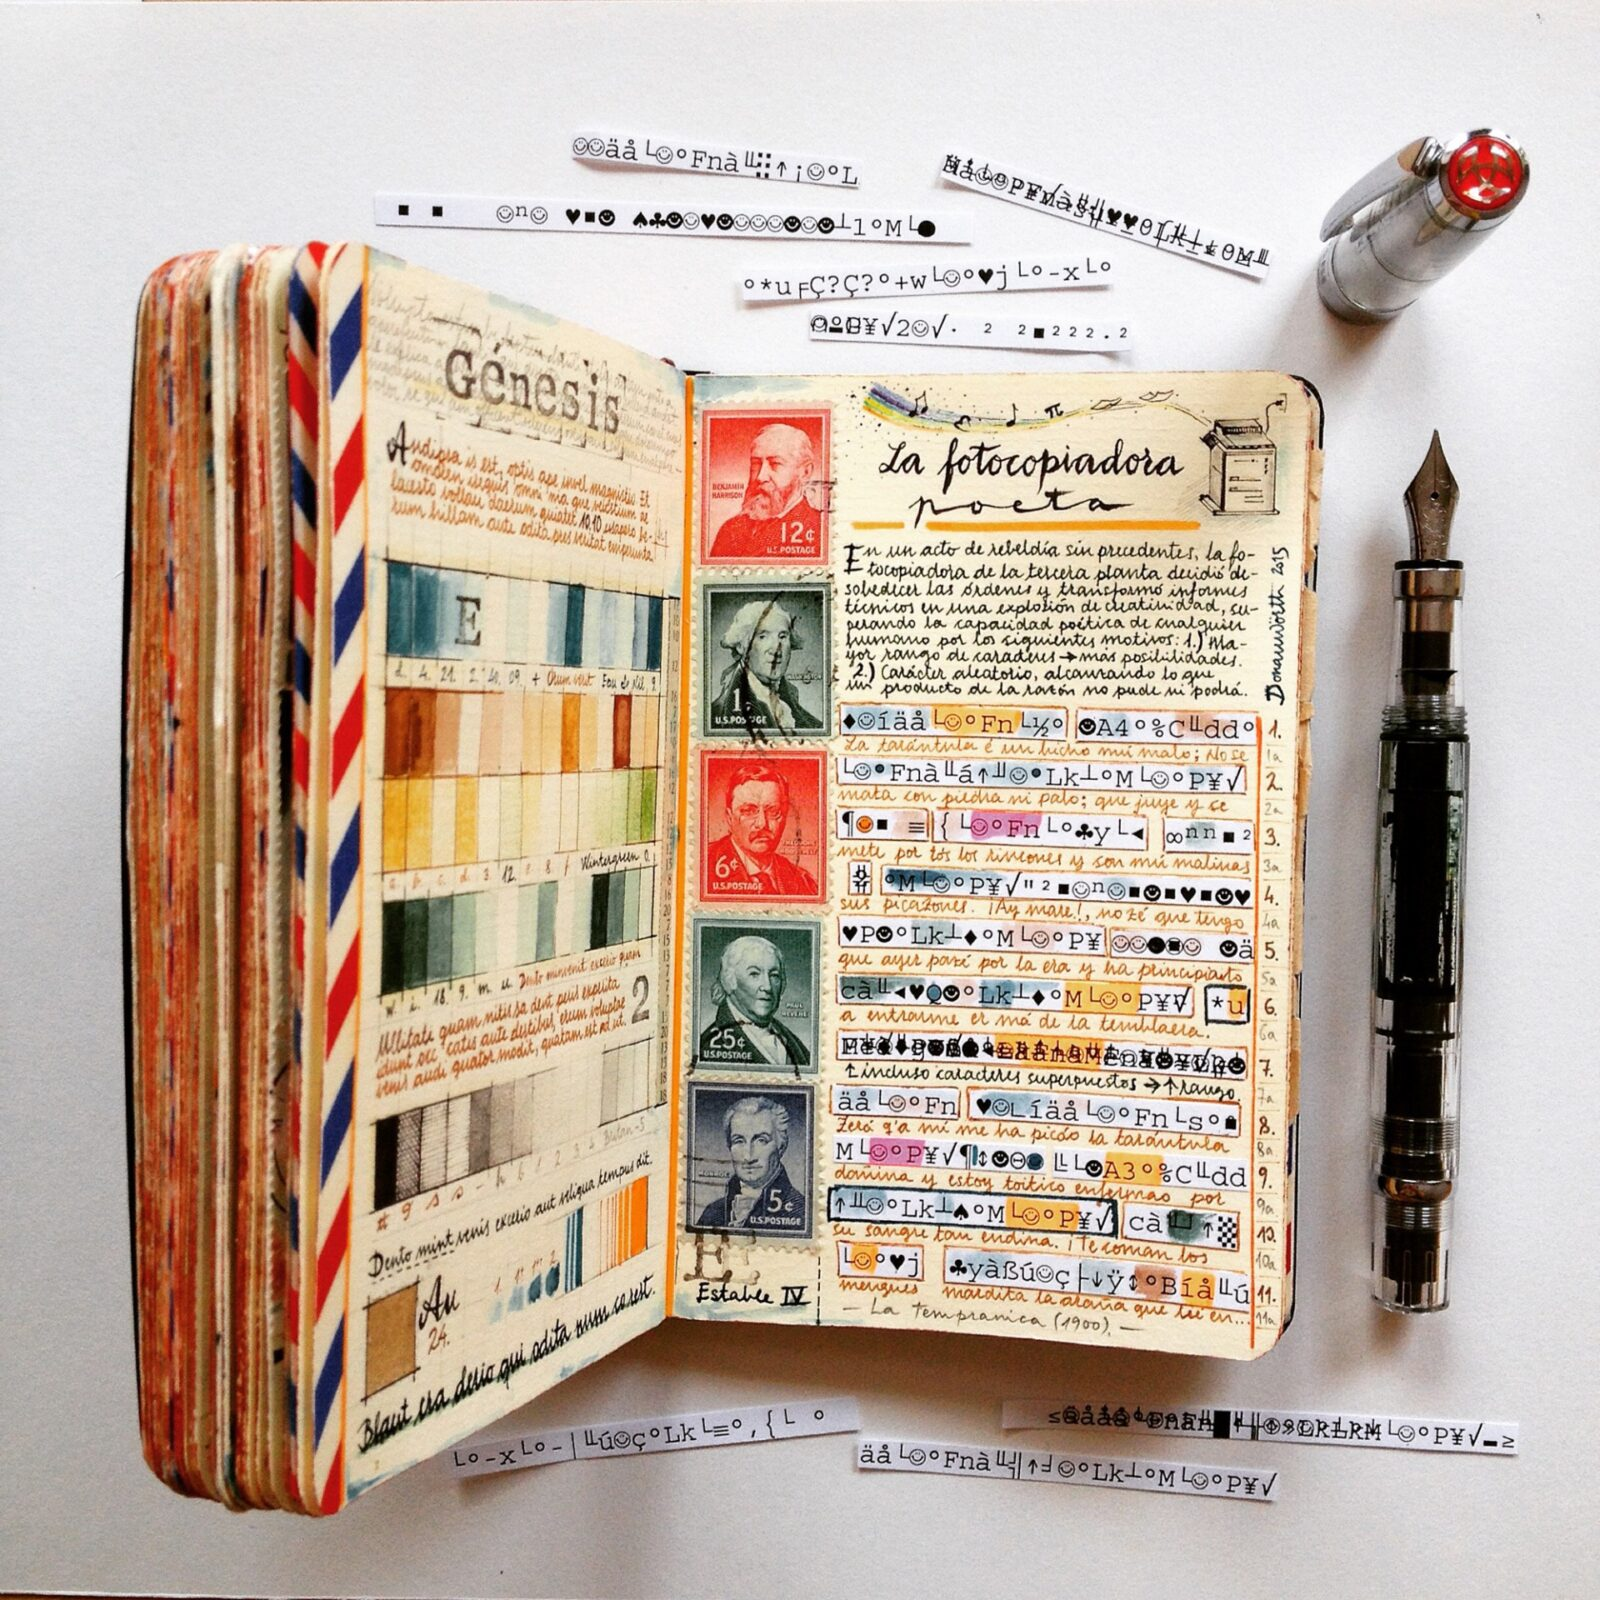 Handmade Sketchbooks Teeming with Colorful Calligraphy, Diagrams, Sketches, and Travel Ephemera by José Naranja